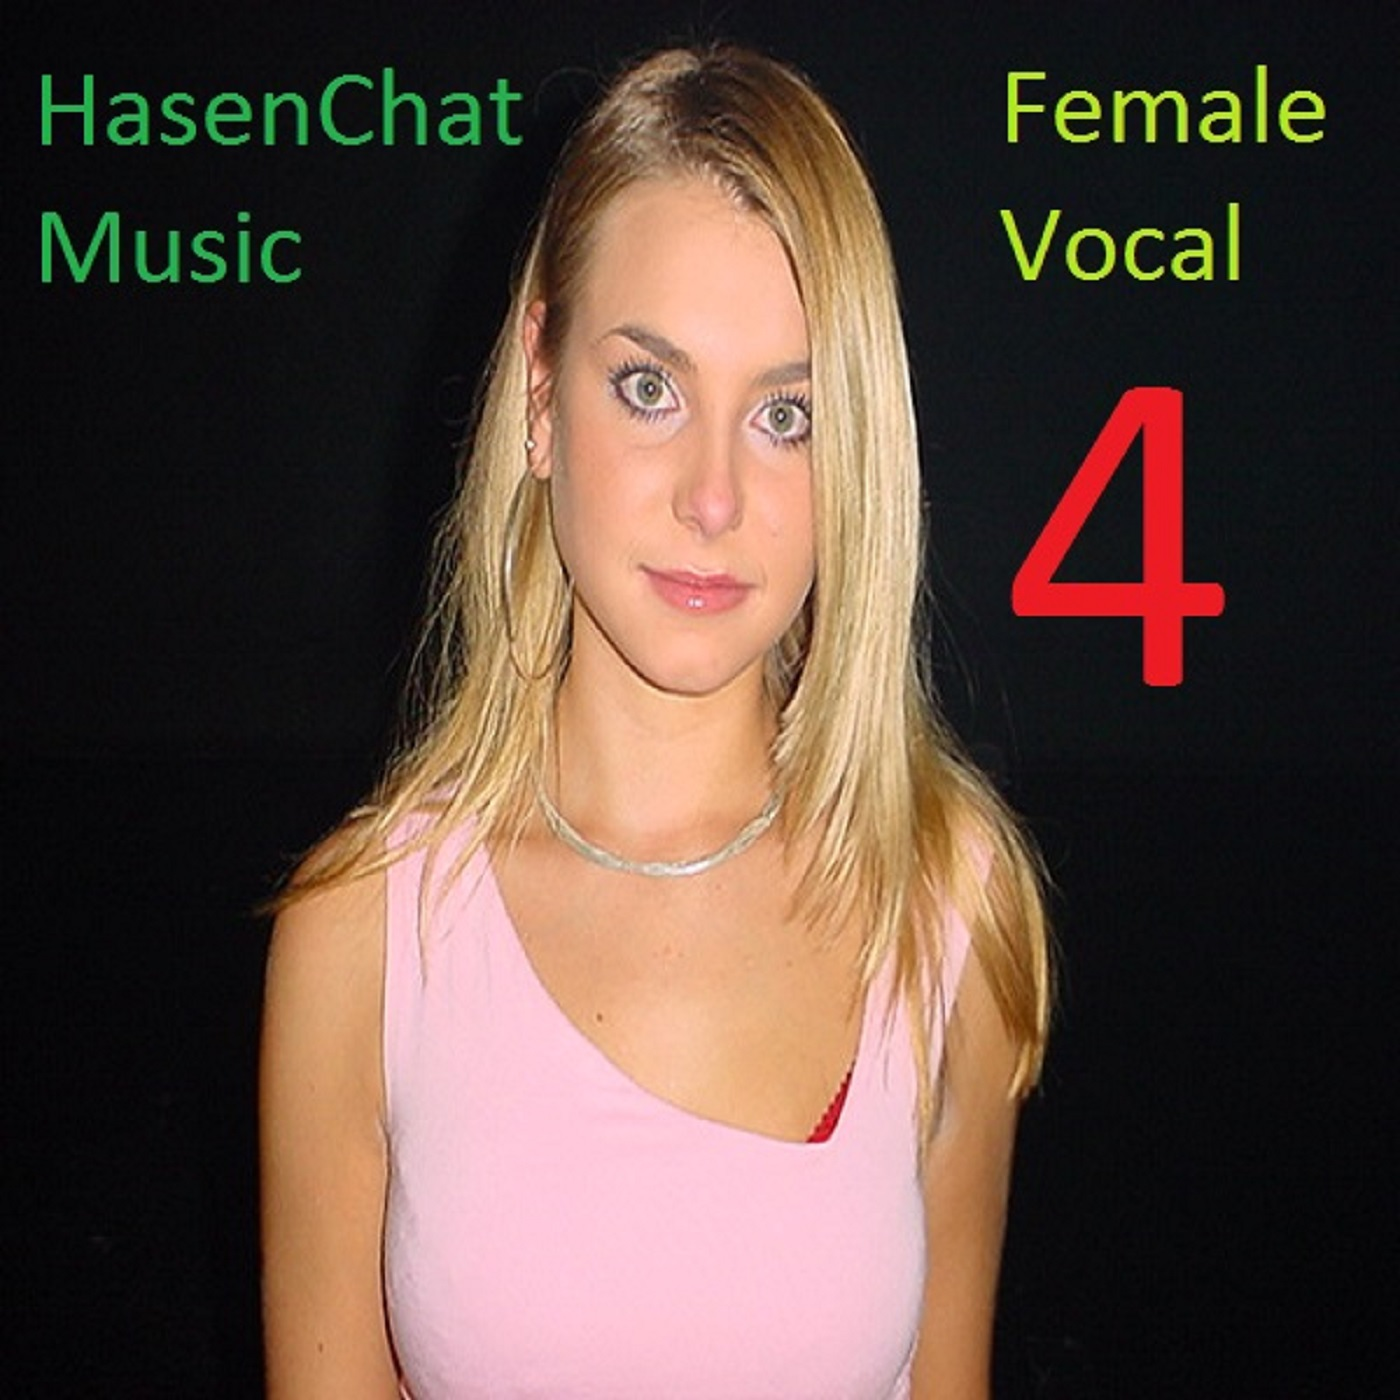 HasenChat Music - Female Vocal - Episode 4